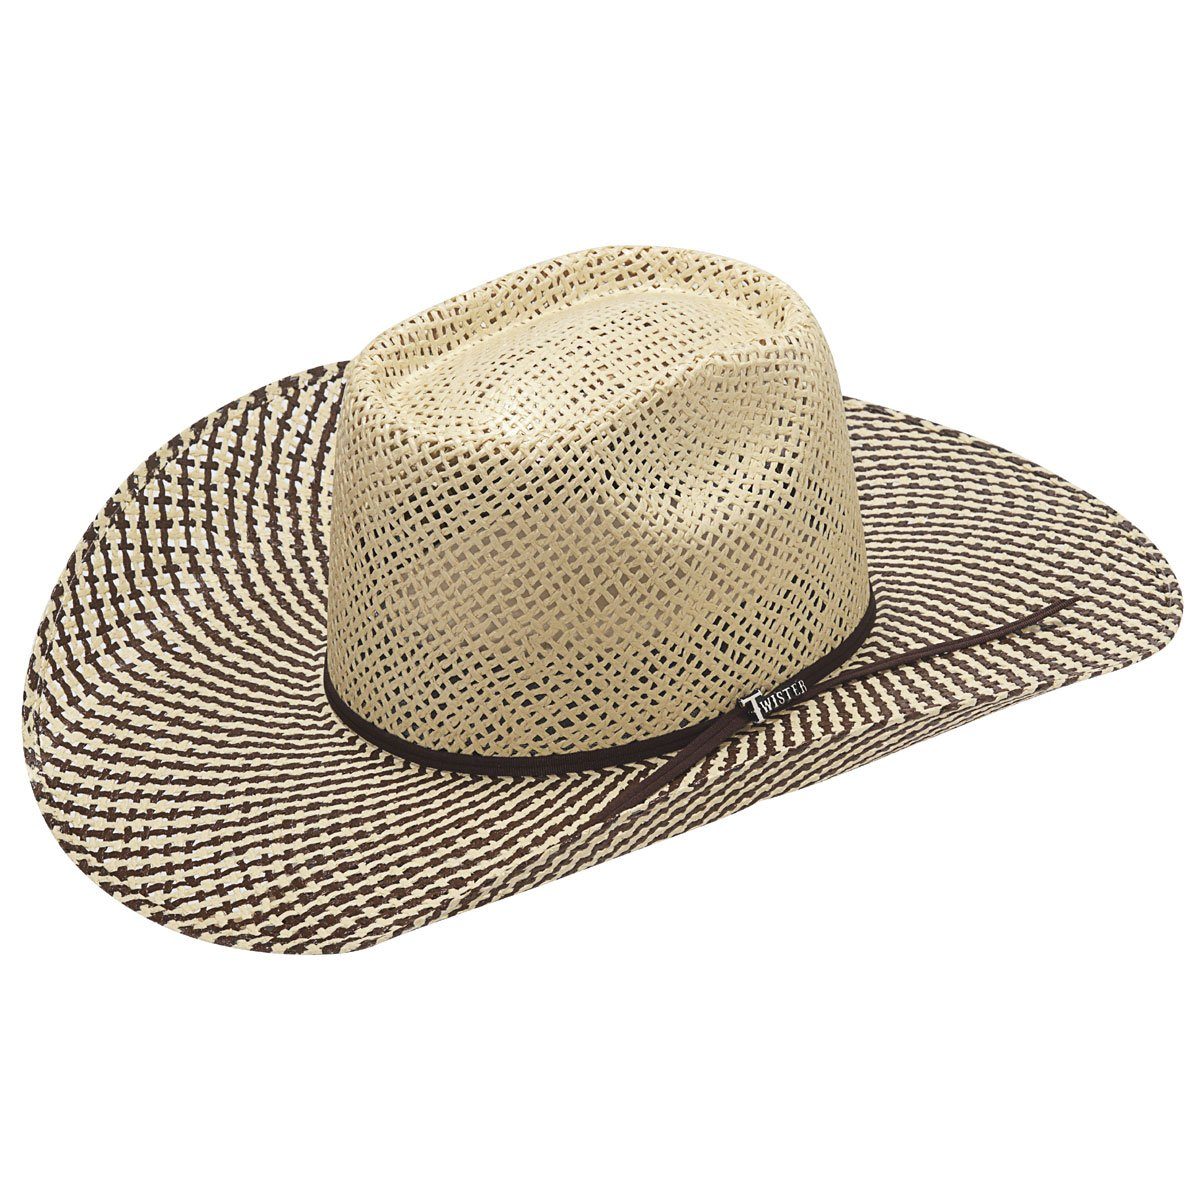 Twisted Straw Hat from Twister